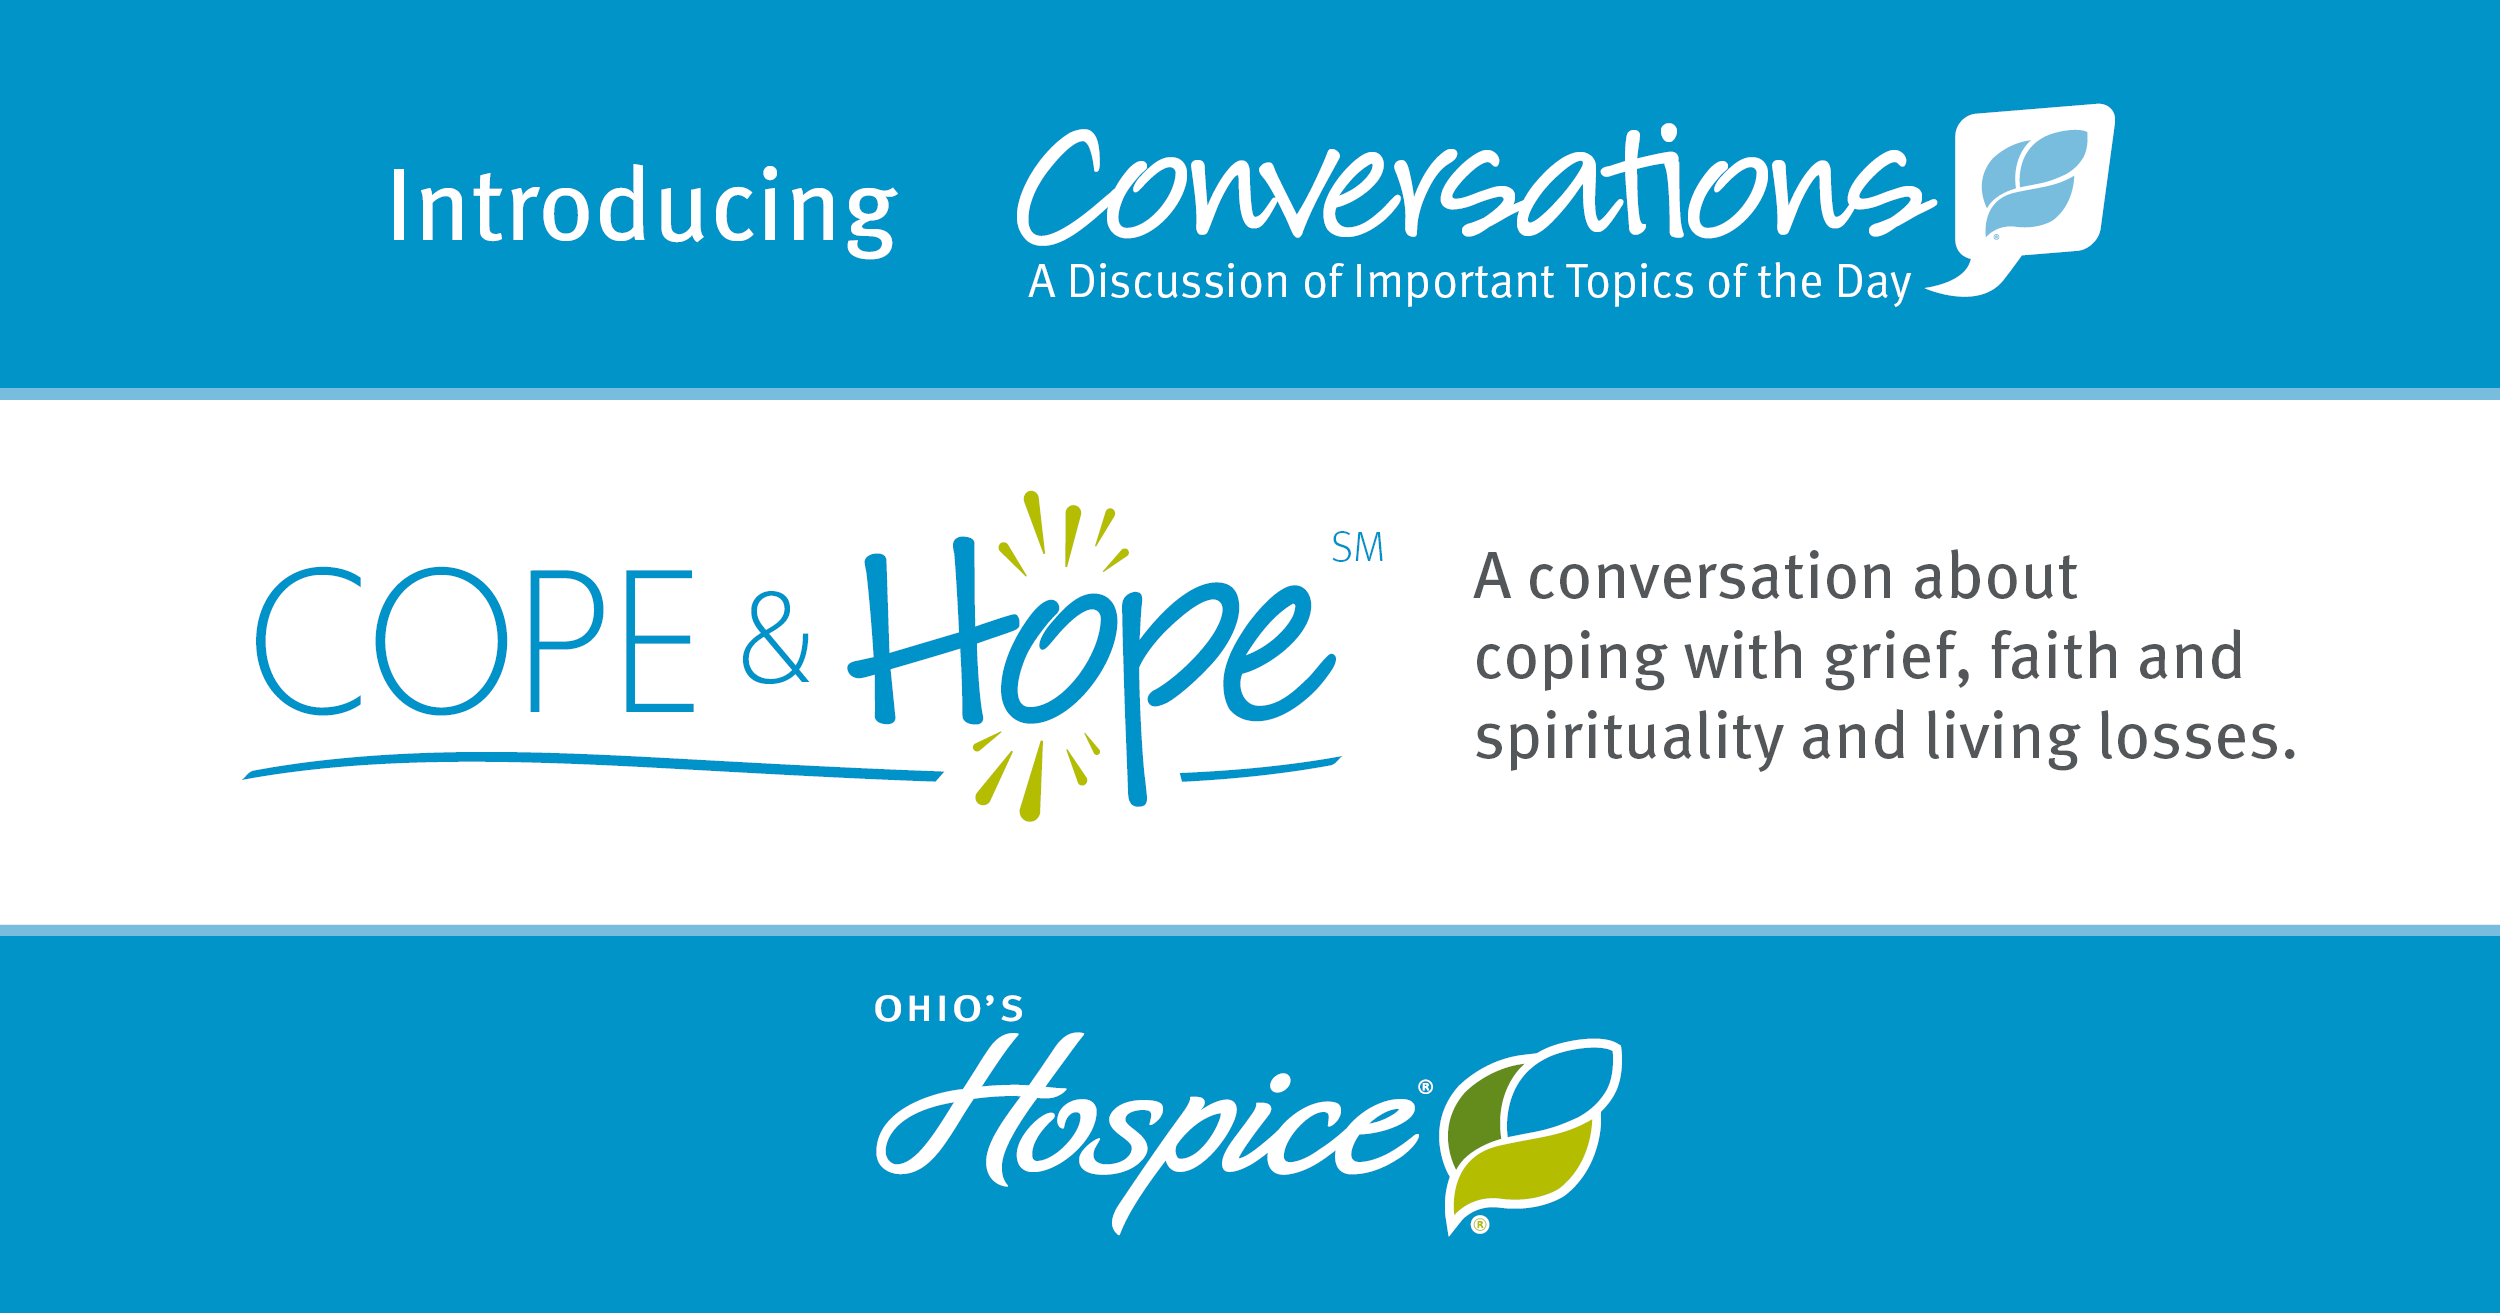 Ohio's Hospice Launches Support Program For Community During COVID-19